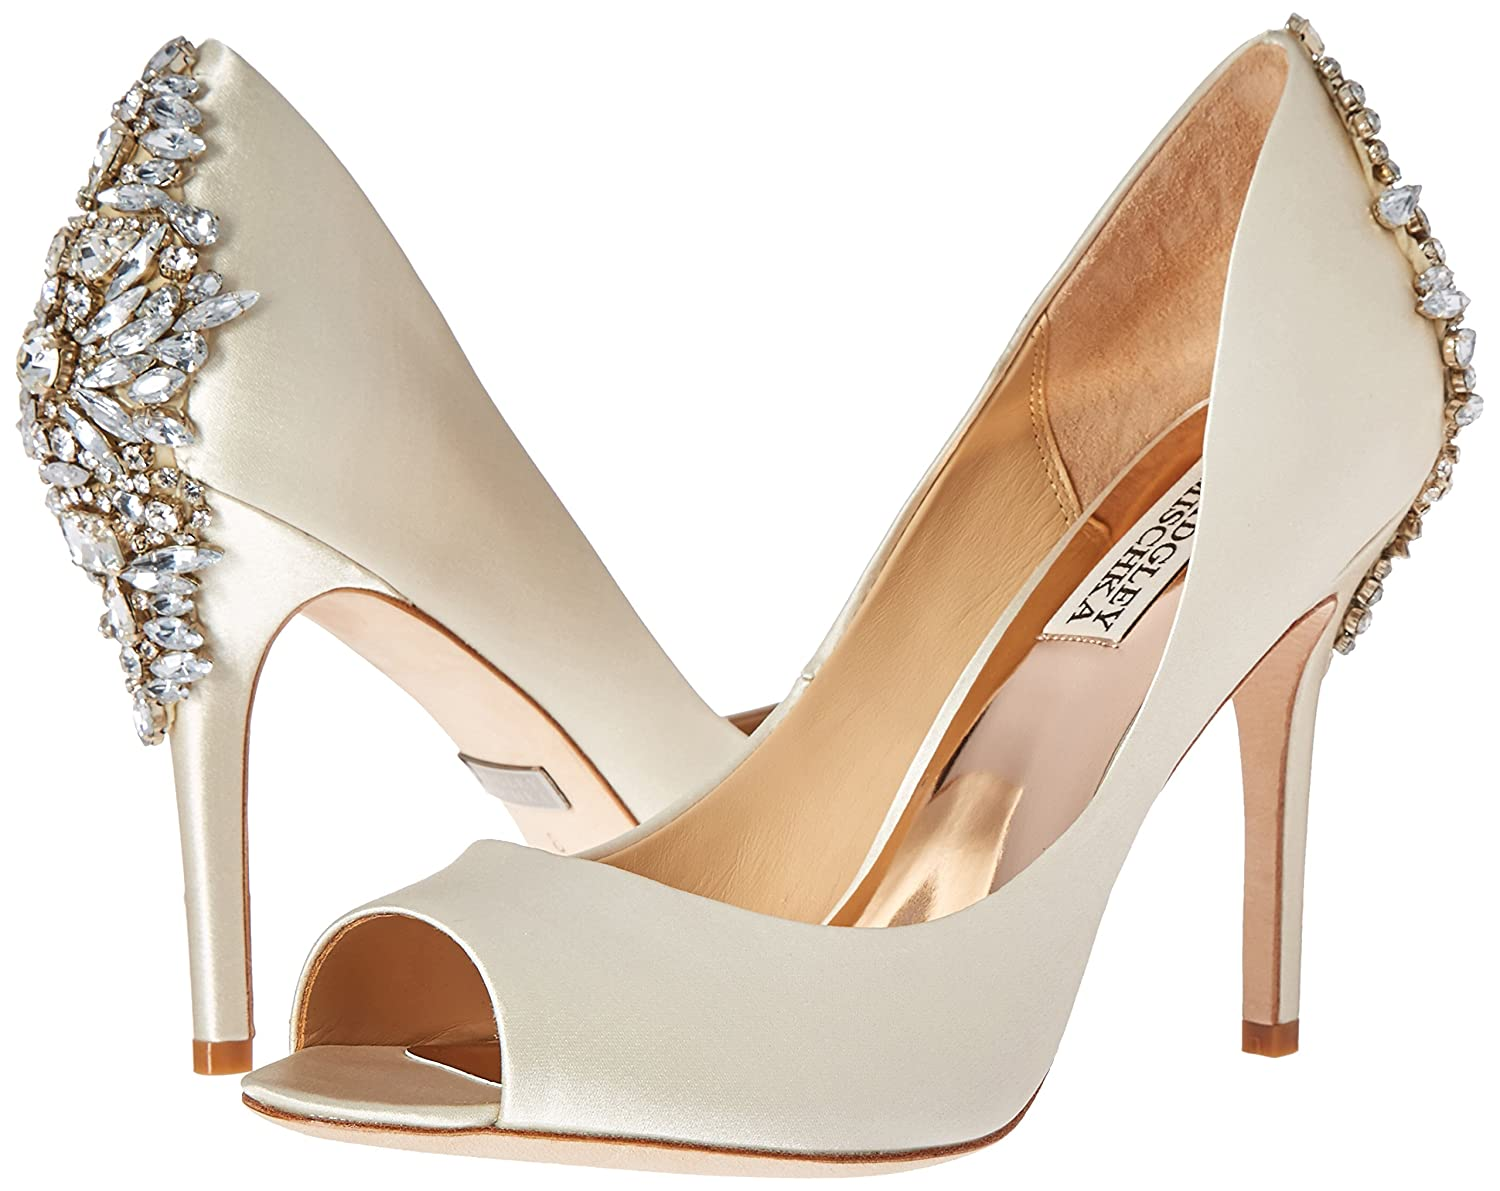 Badgley Badgley Badgley Mischka Nilla Damen Peep Toes e050f9